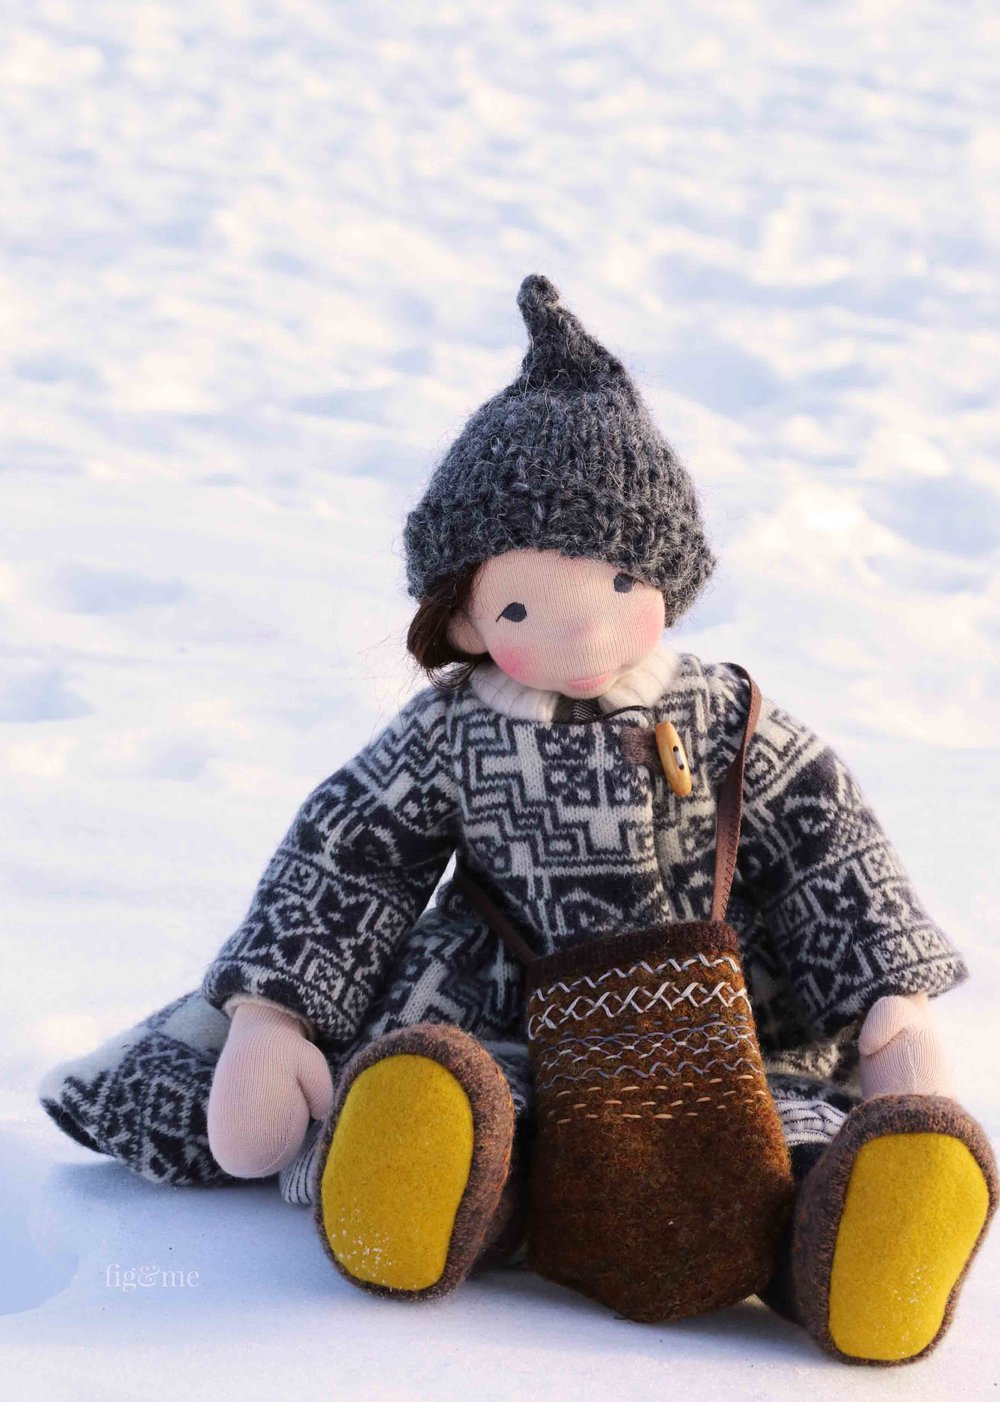 Snow, art doll by Fig and Me. Sculpted in wool and dressed in her wintry attire.